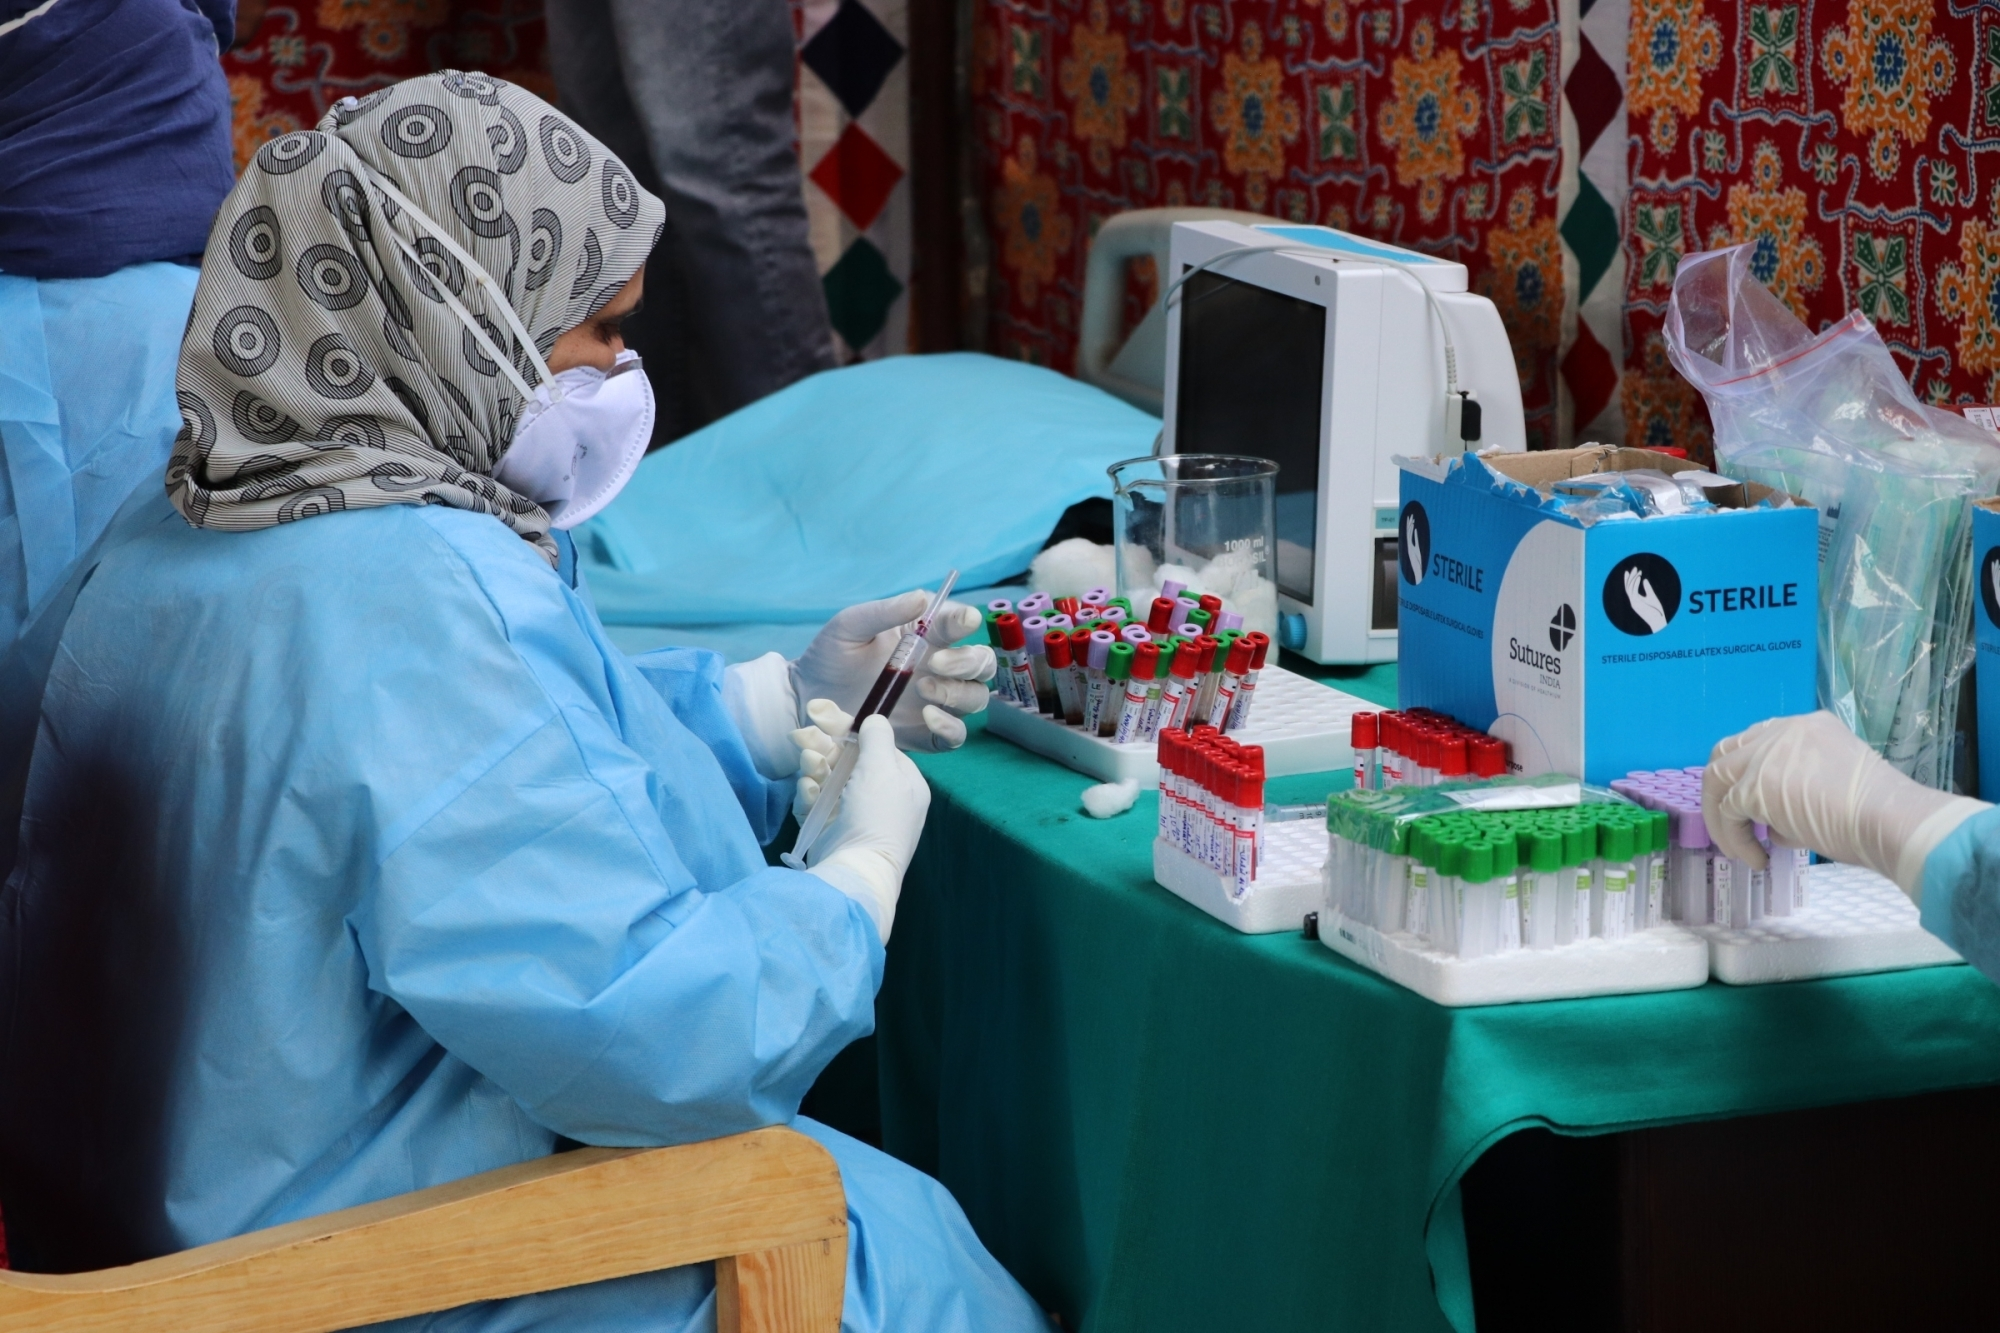 J&K ready to roll out vaccine shots on Jan 16